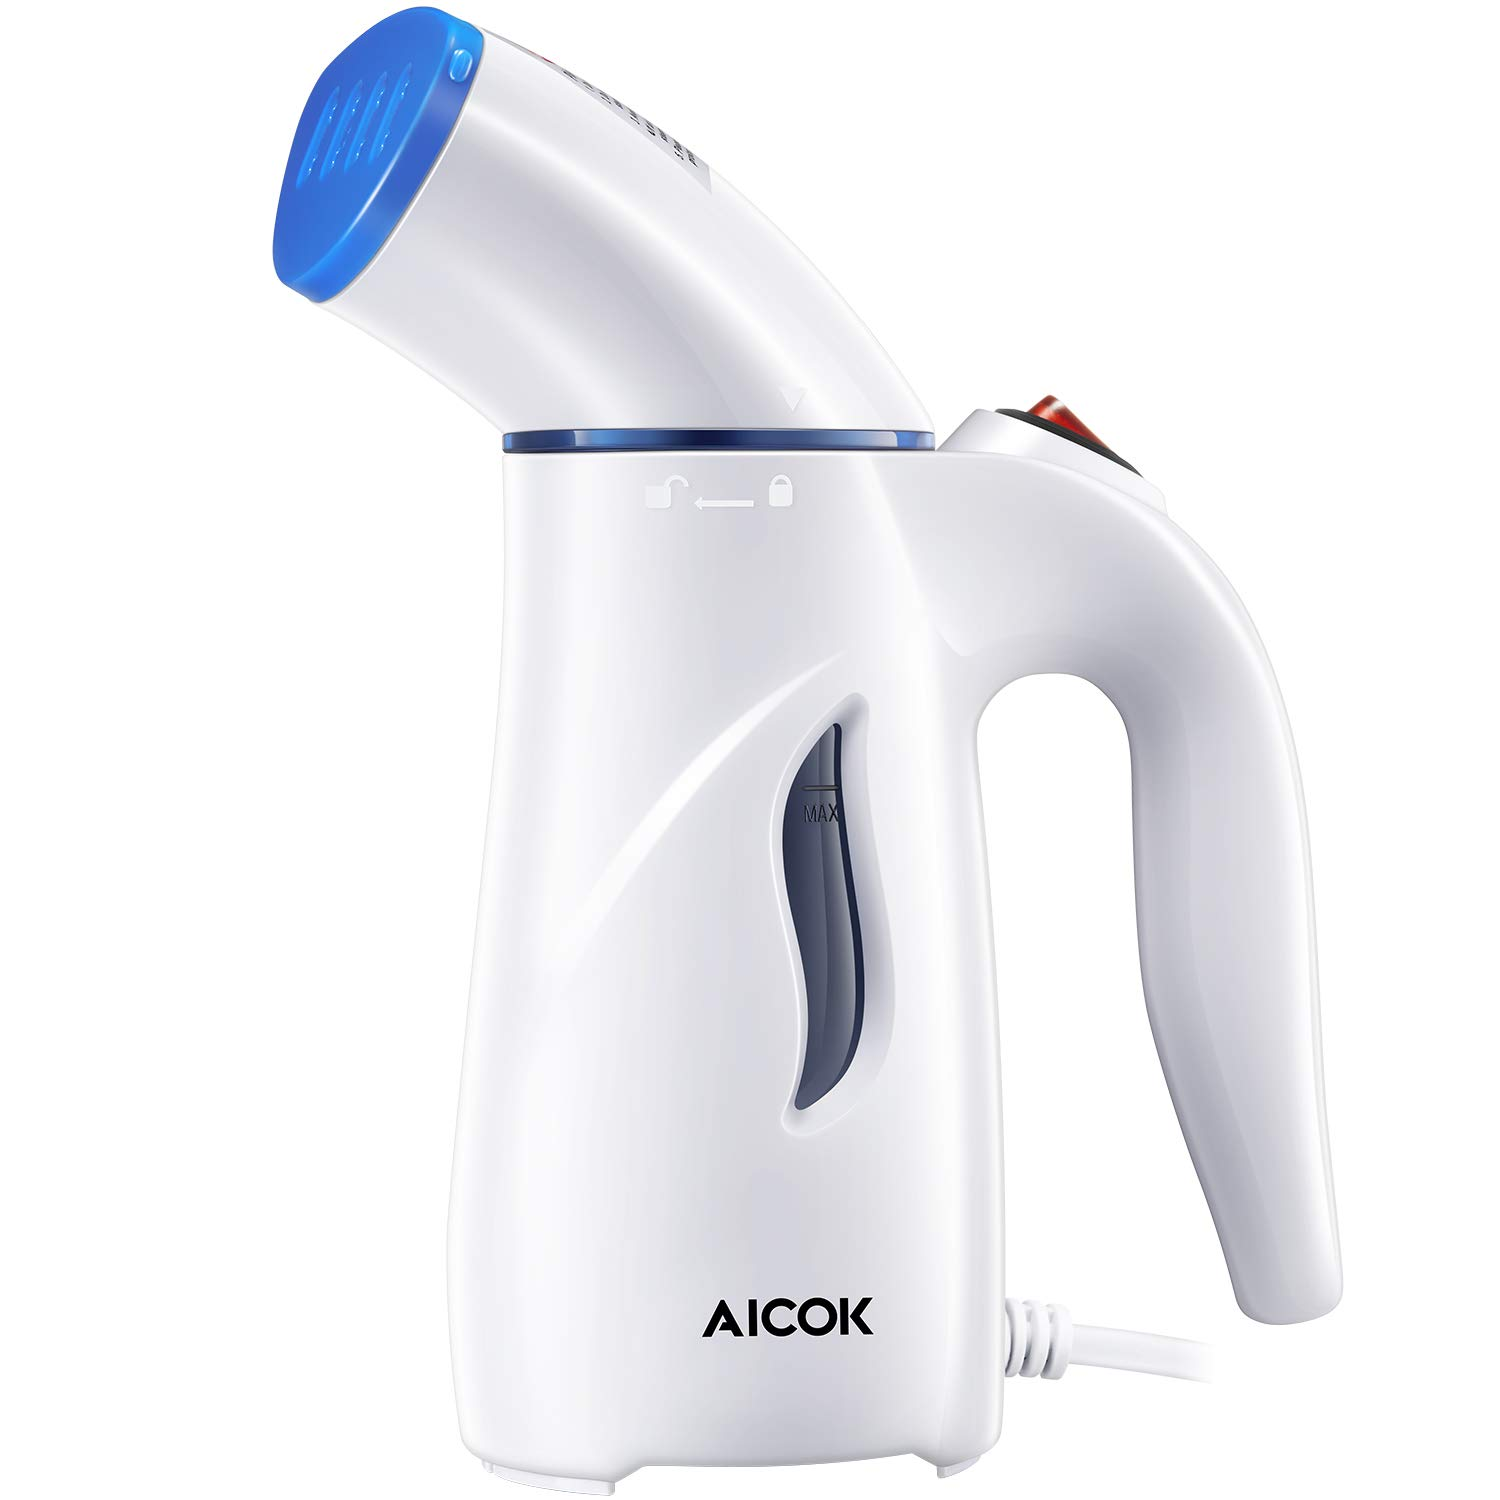 AICOK Clothes Steamer, Handheld Travel Garment Steamer for Clothes